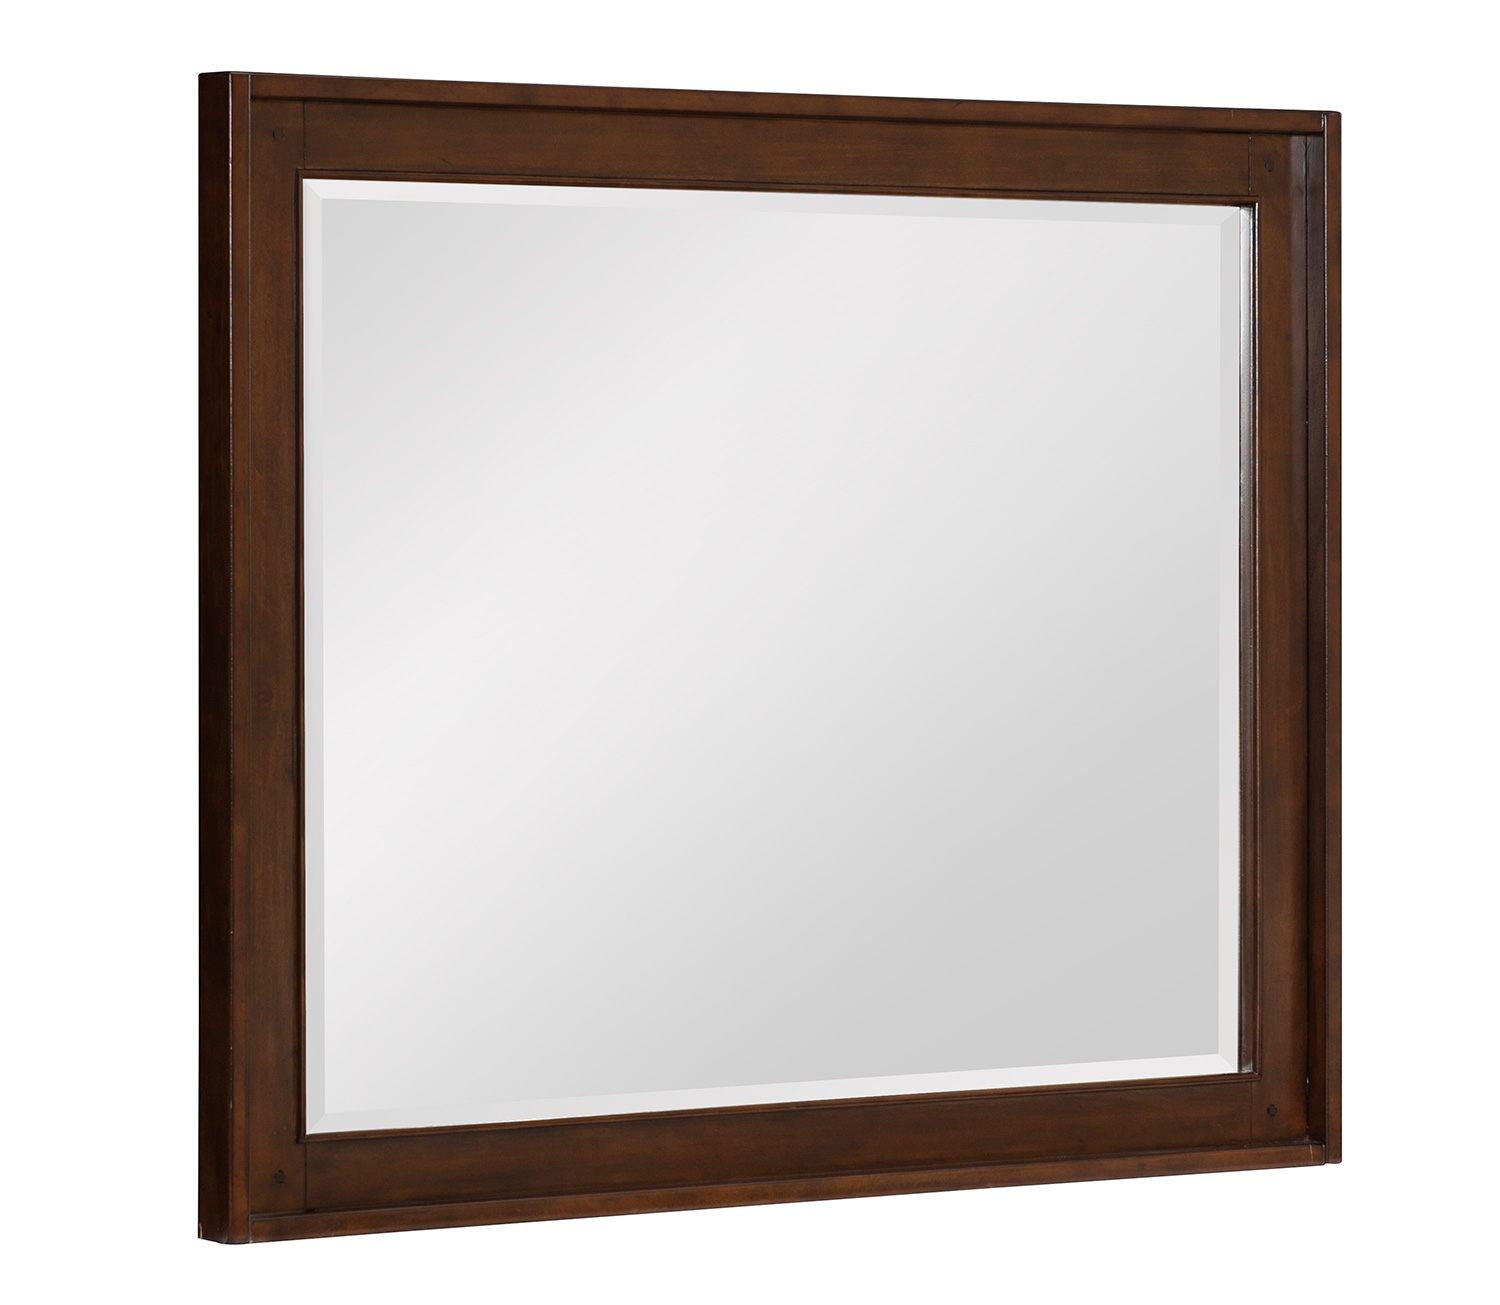 Homelegance Frazier Park Mirror - Brown Cherry